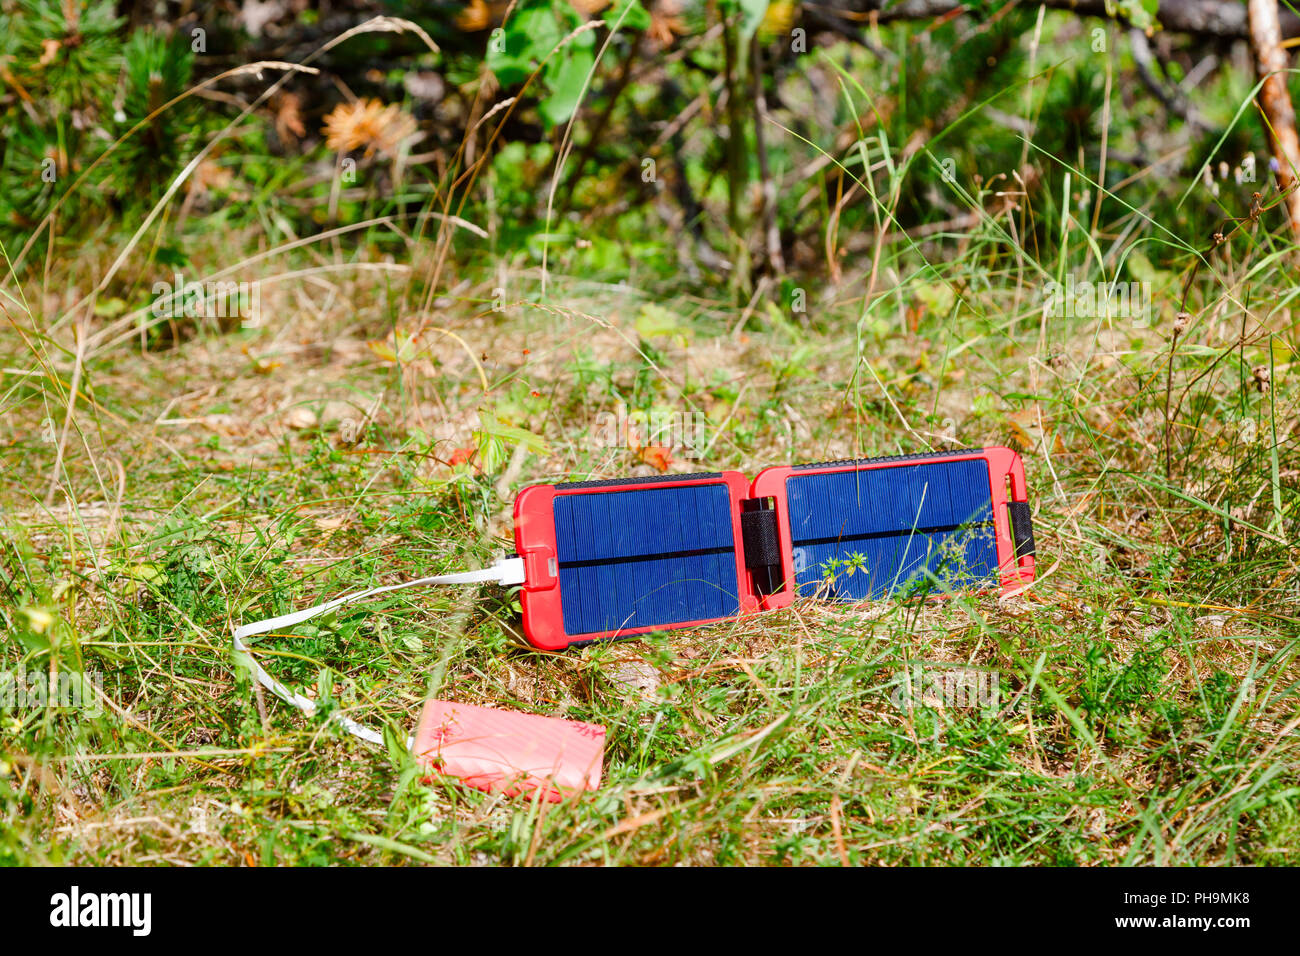 Portable solar panel charges the battery of a powerbank - an alternative energy source in the wild concept - Stock Image